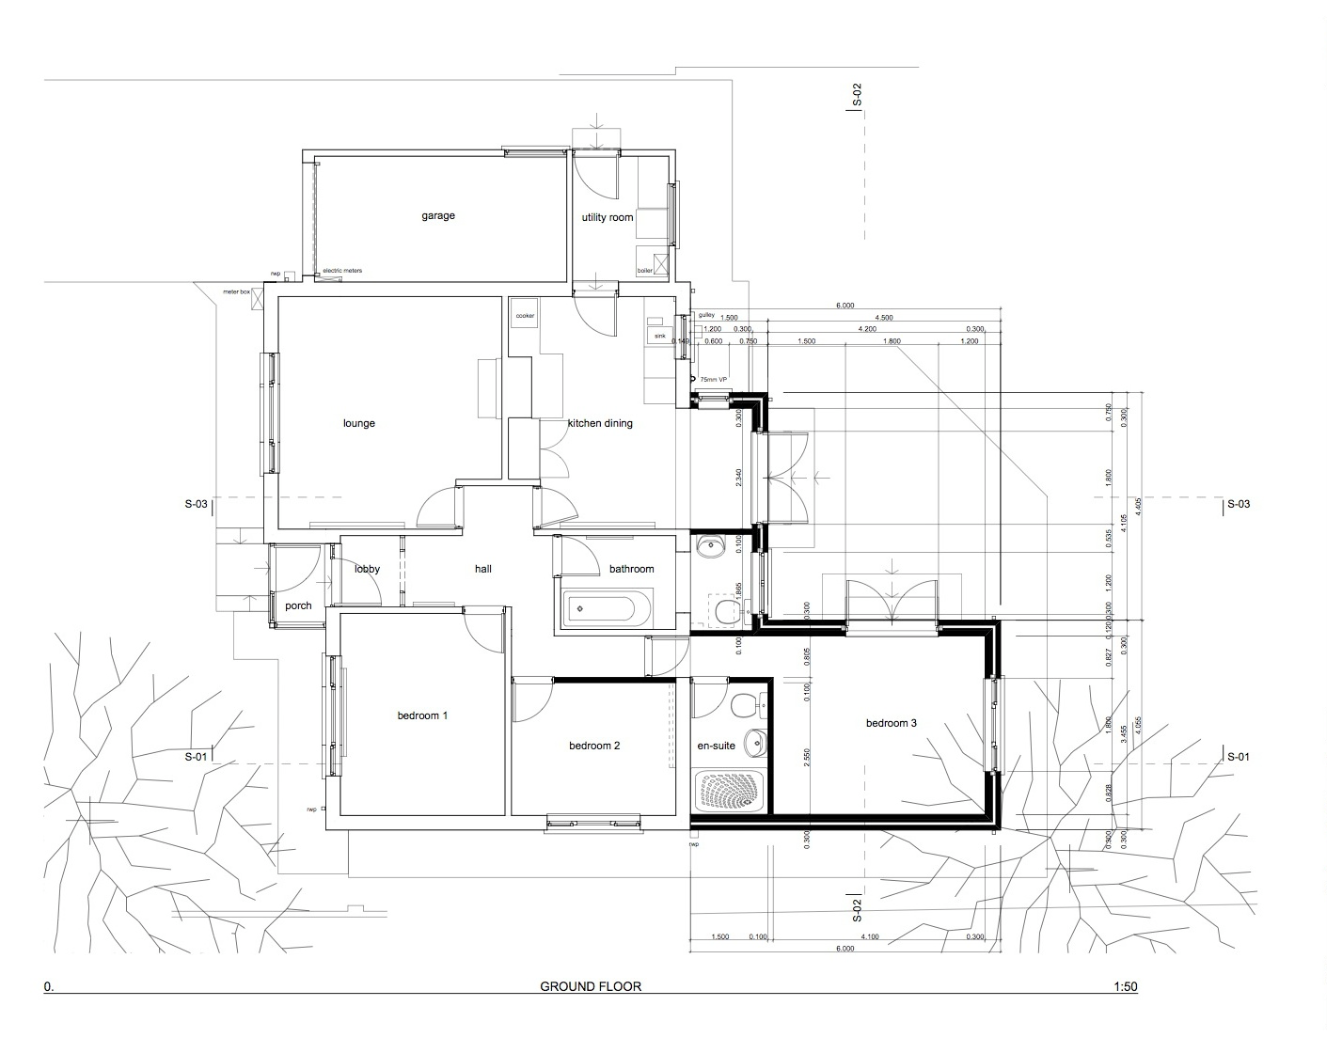 2348 Floor Plan_edited